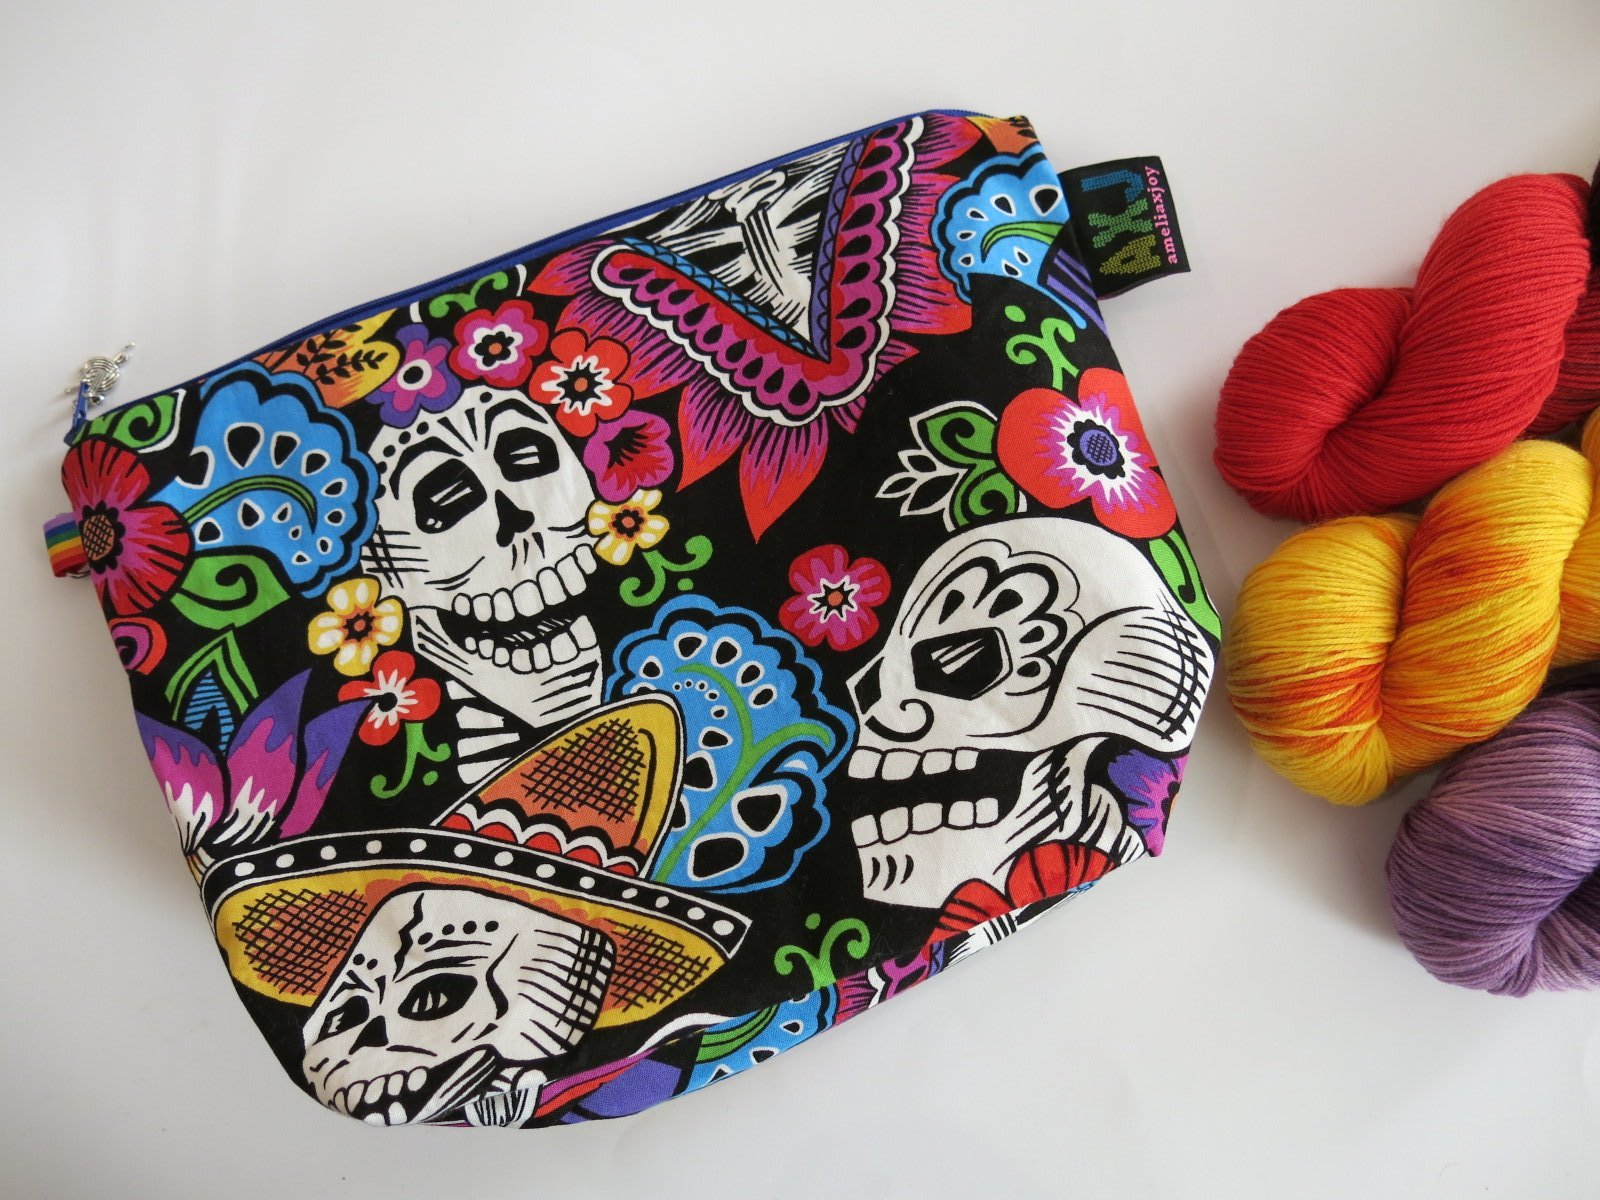 day of the dead zipper bag for use as a pencil case or makeup bag